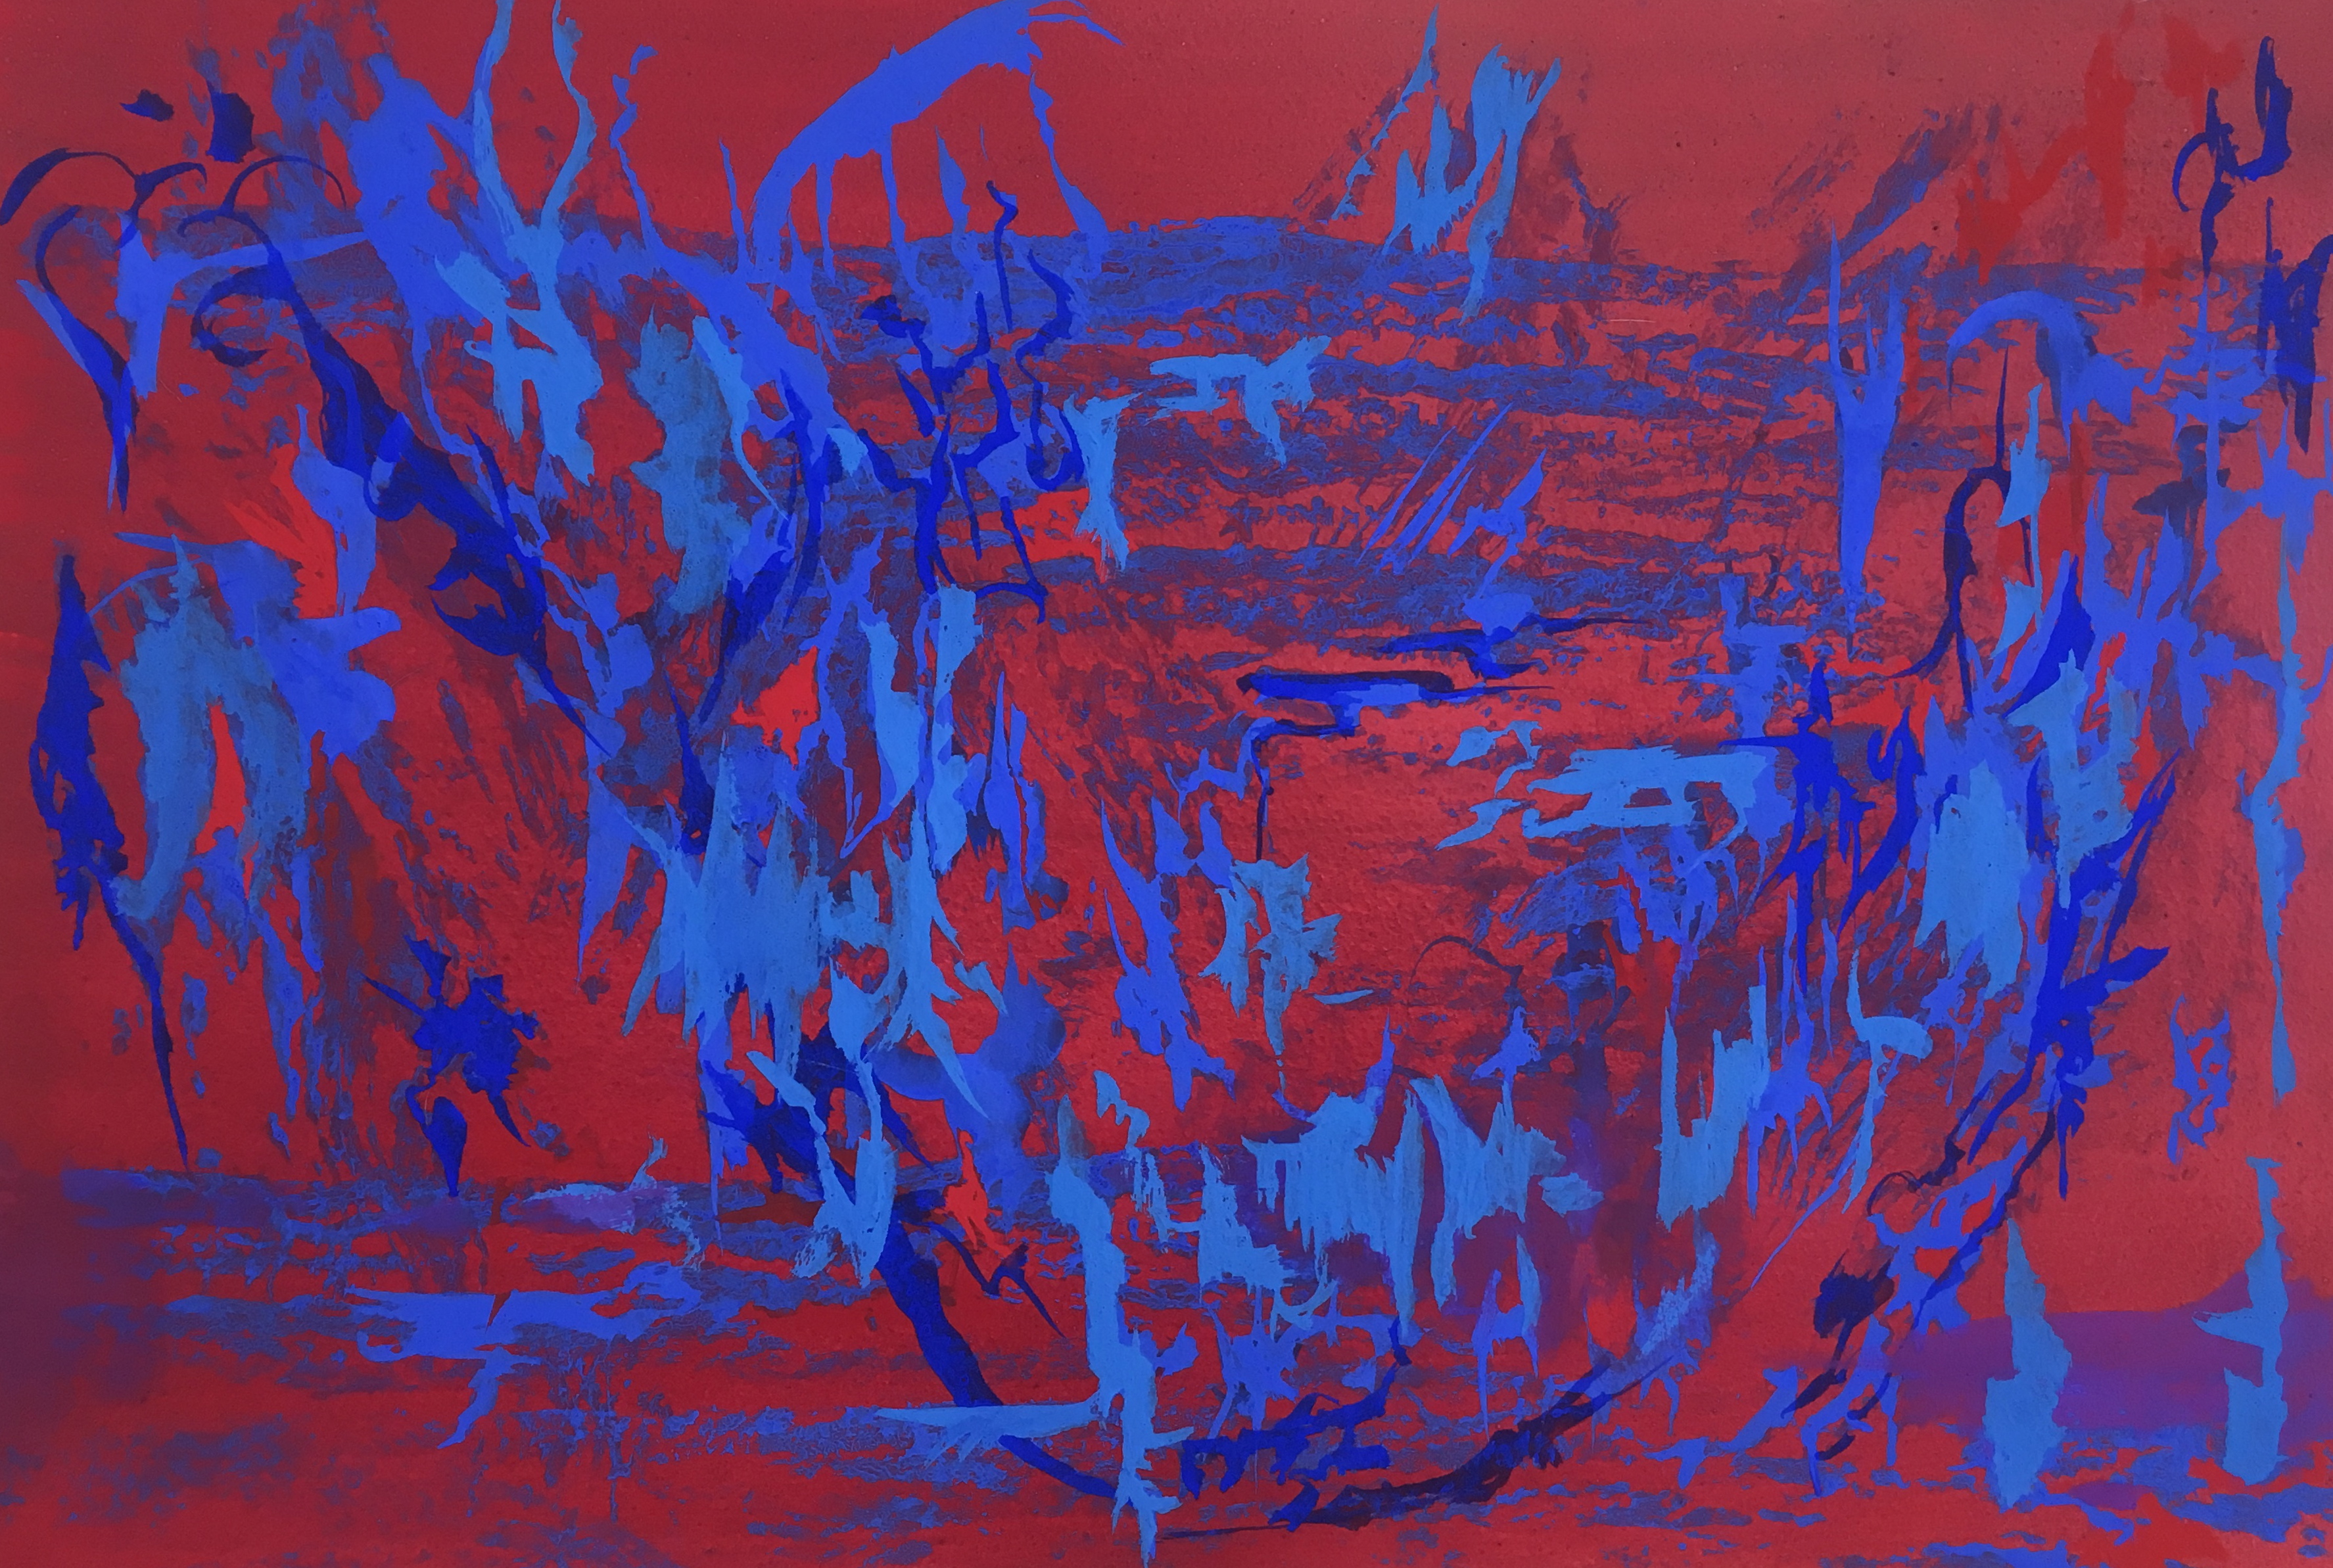 Composition in Alizarin and Blue, Milk paint on paper, 56 x 86 cm 2016